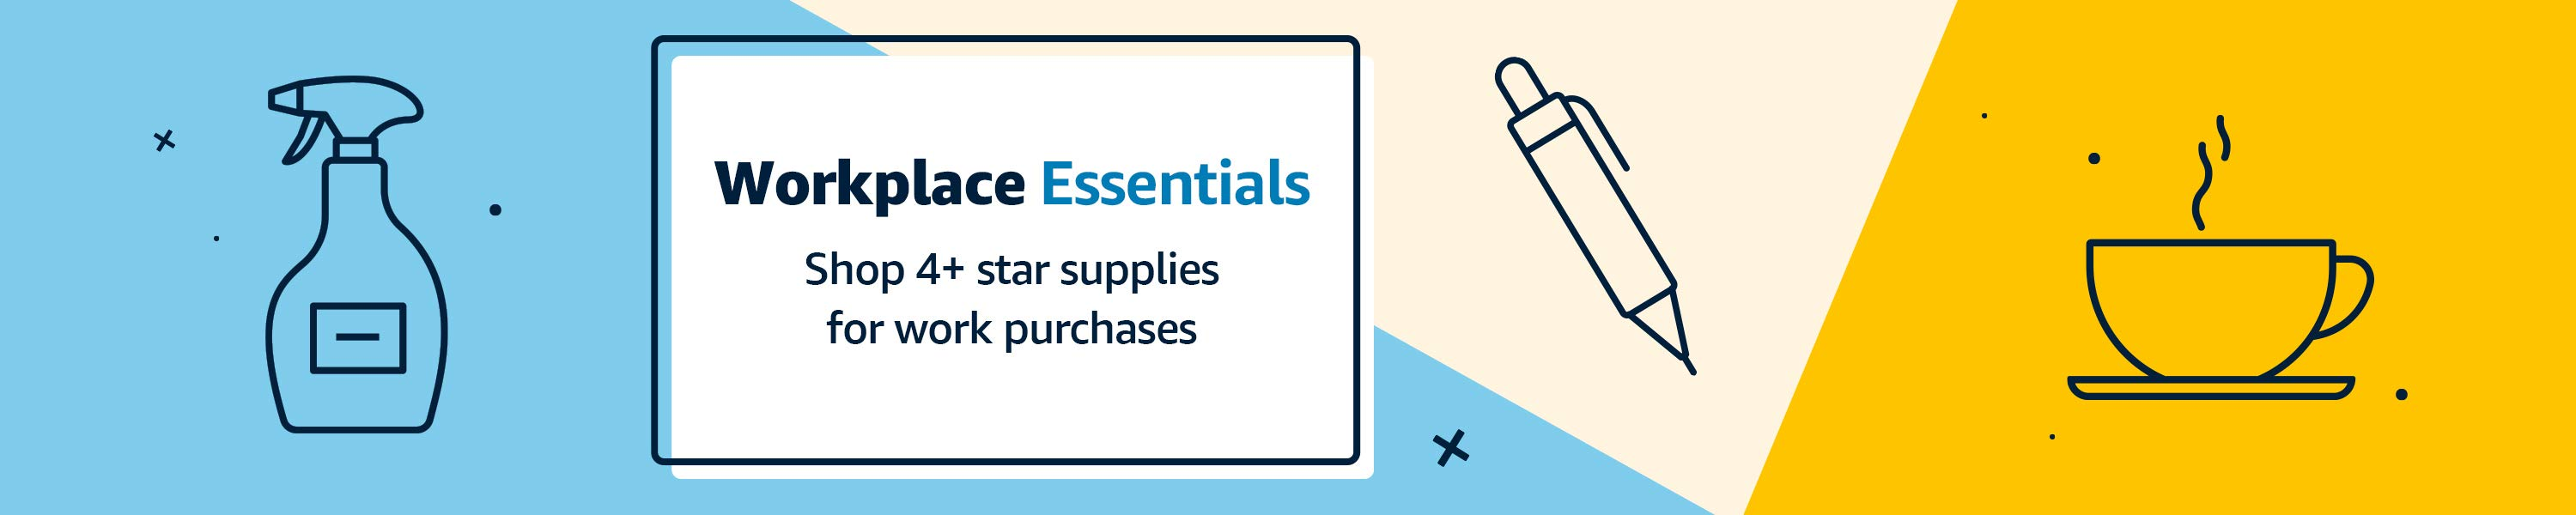 Workplace Essentials Shop 4+ star supplies for work purchases